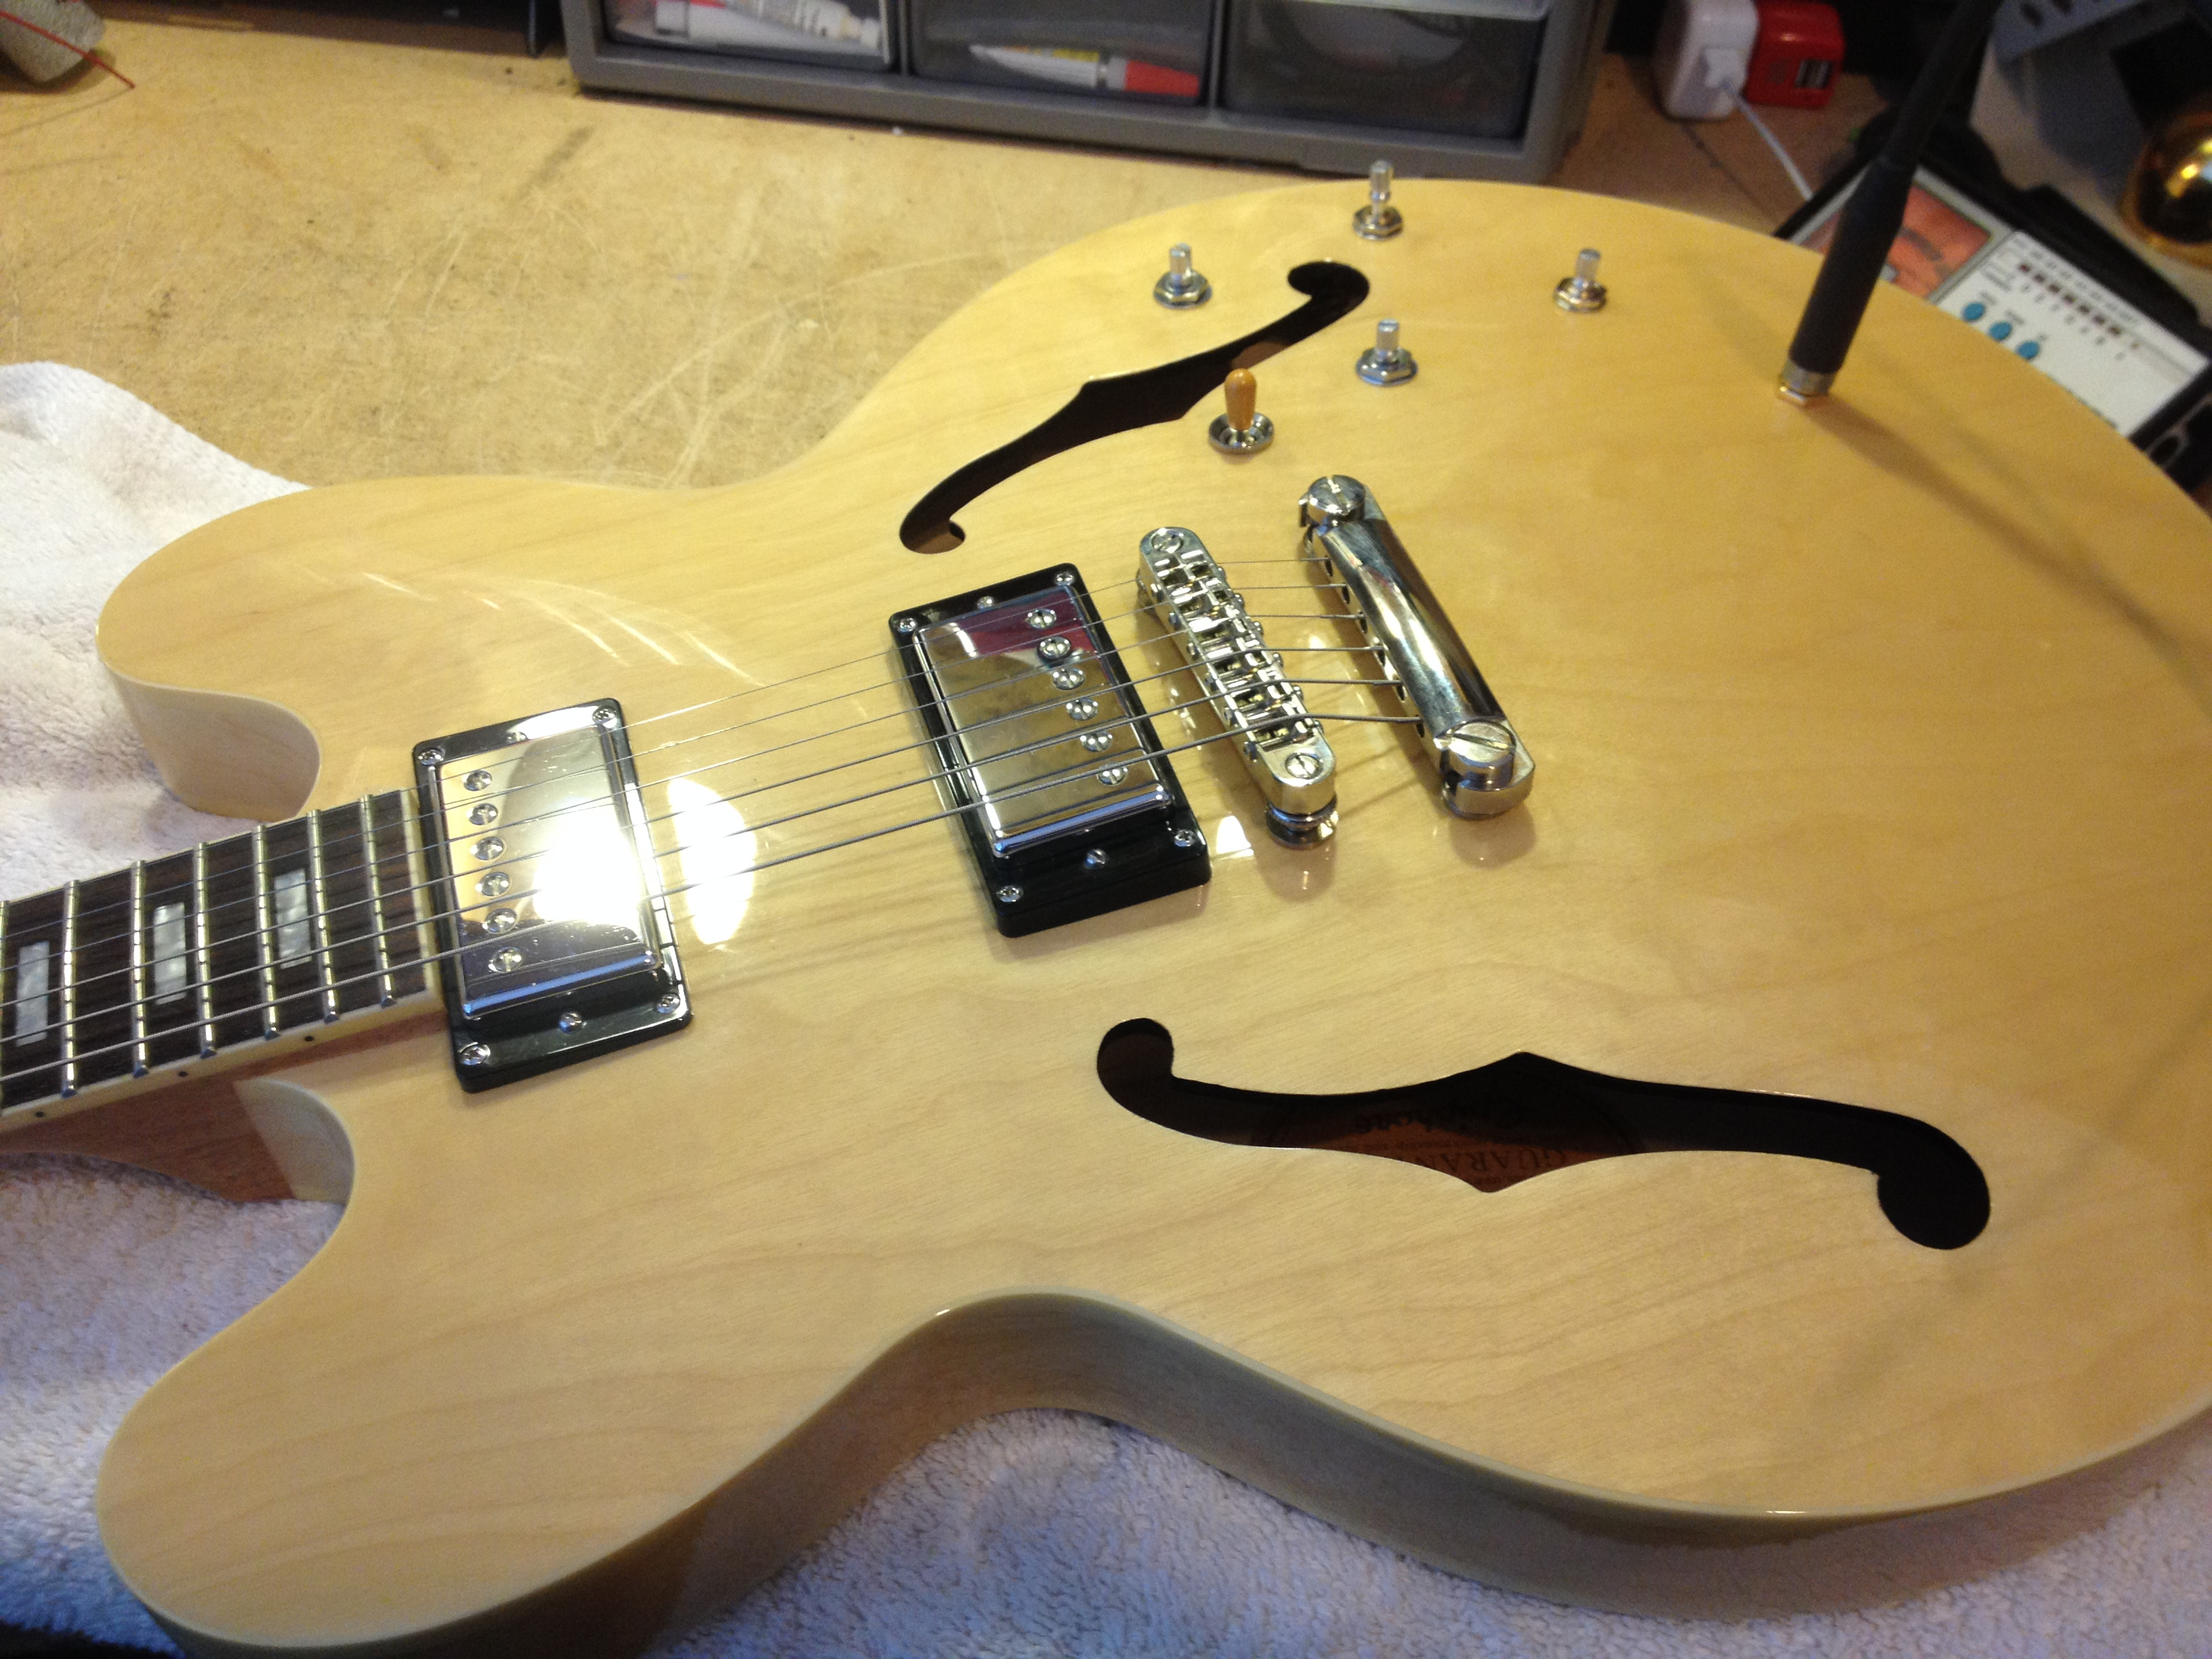 Instrument Electronics Wiring Modifications Electric Guitar Harness Pickup And In Addition To Amplifier Fx Pedal Repair Dar Offers Bass Work